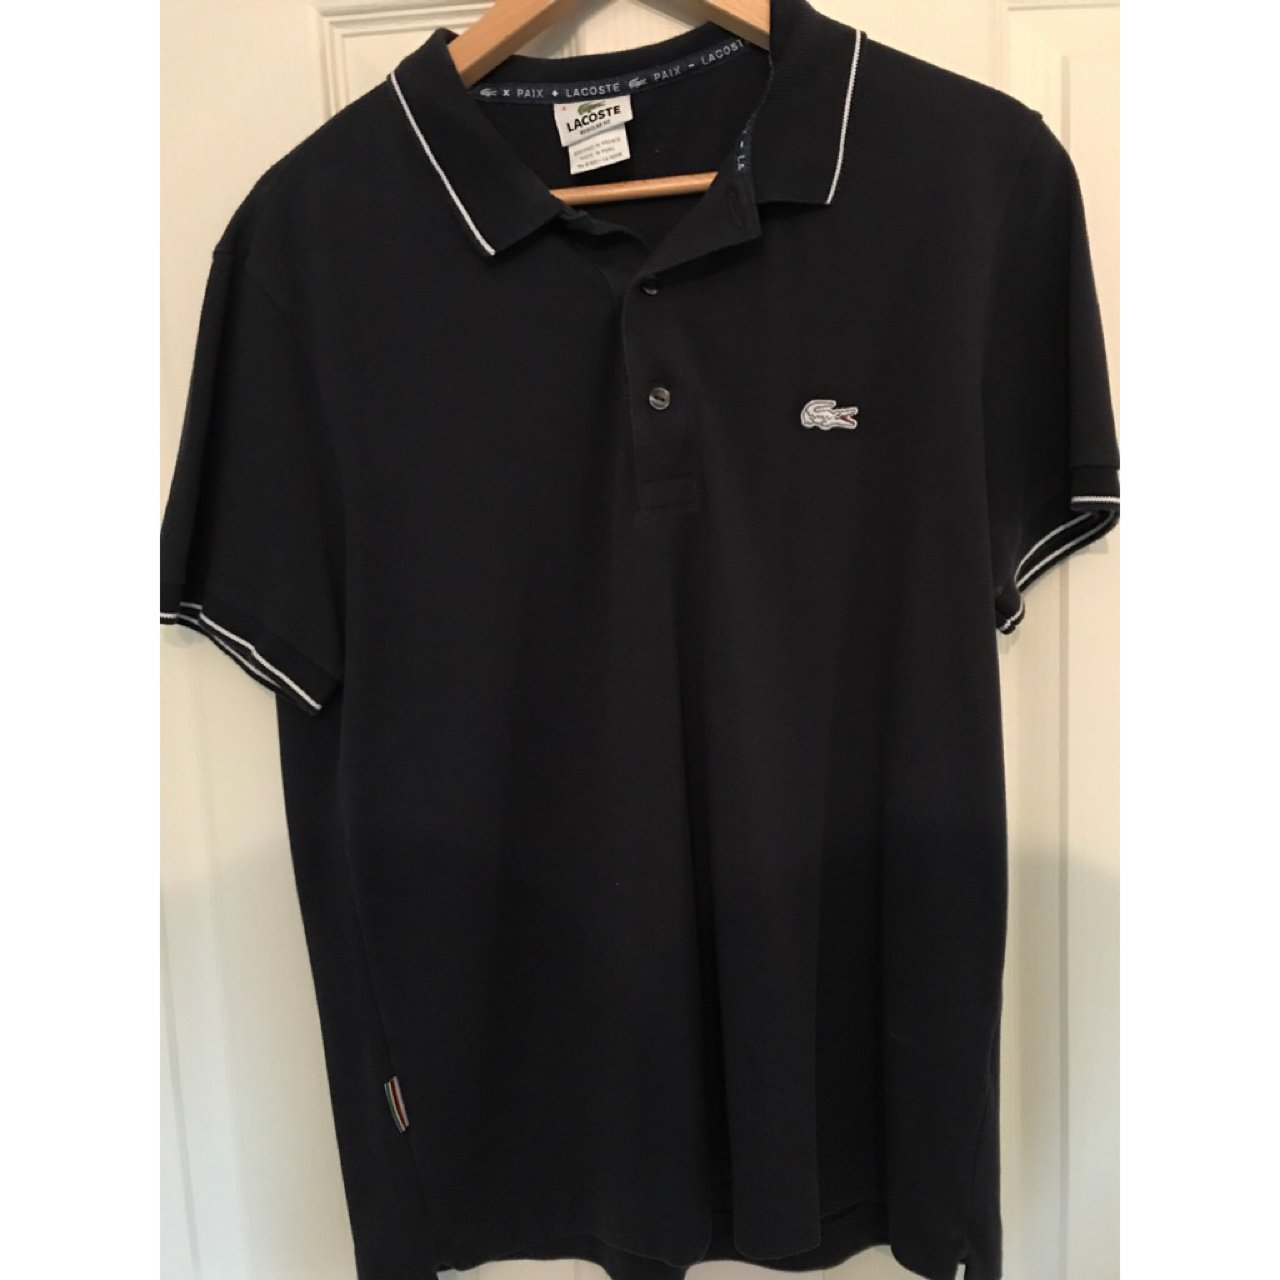 098bb959 Lacoste Logo Polo Shirt Never Worn So 10 10 And Took Off It Depop